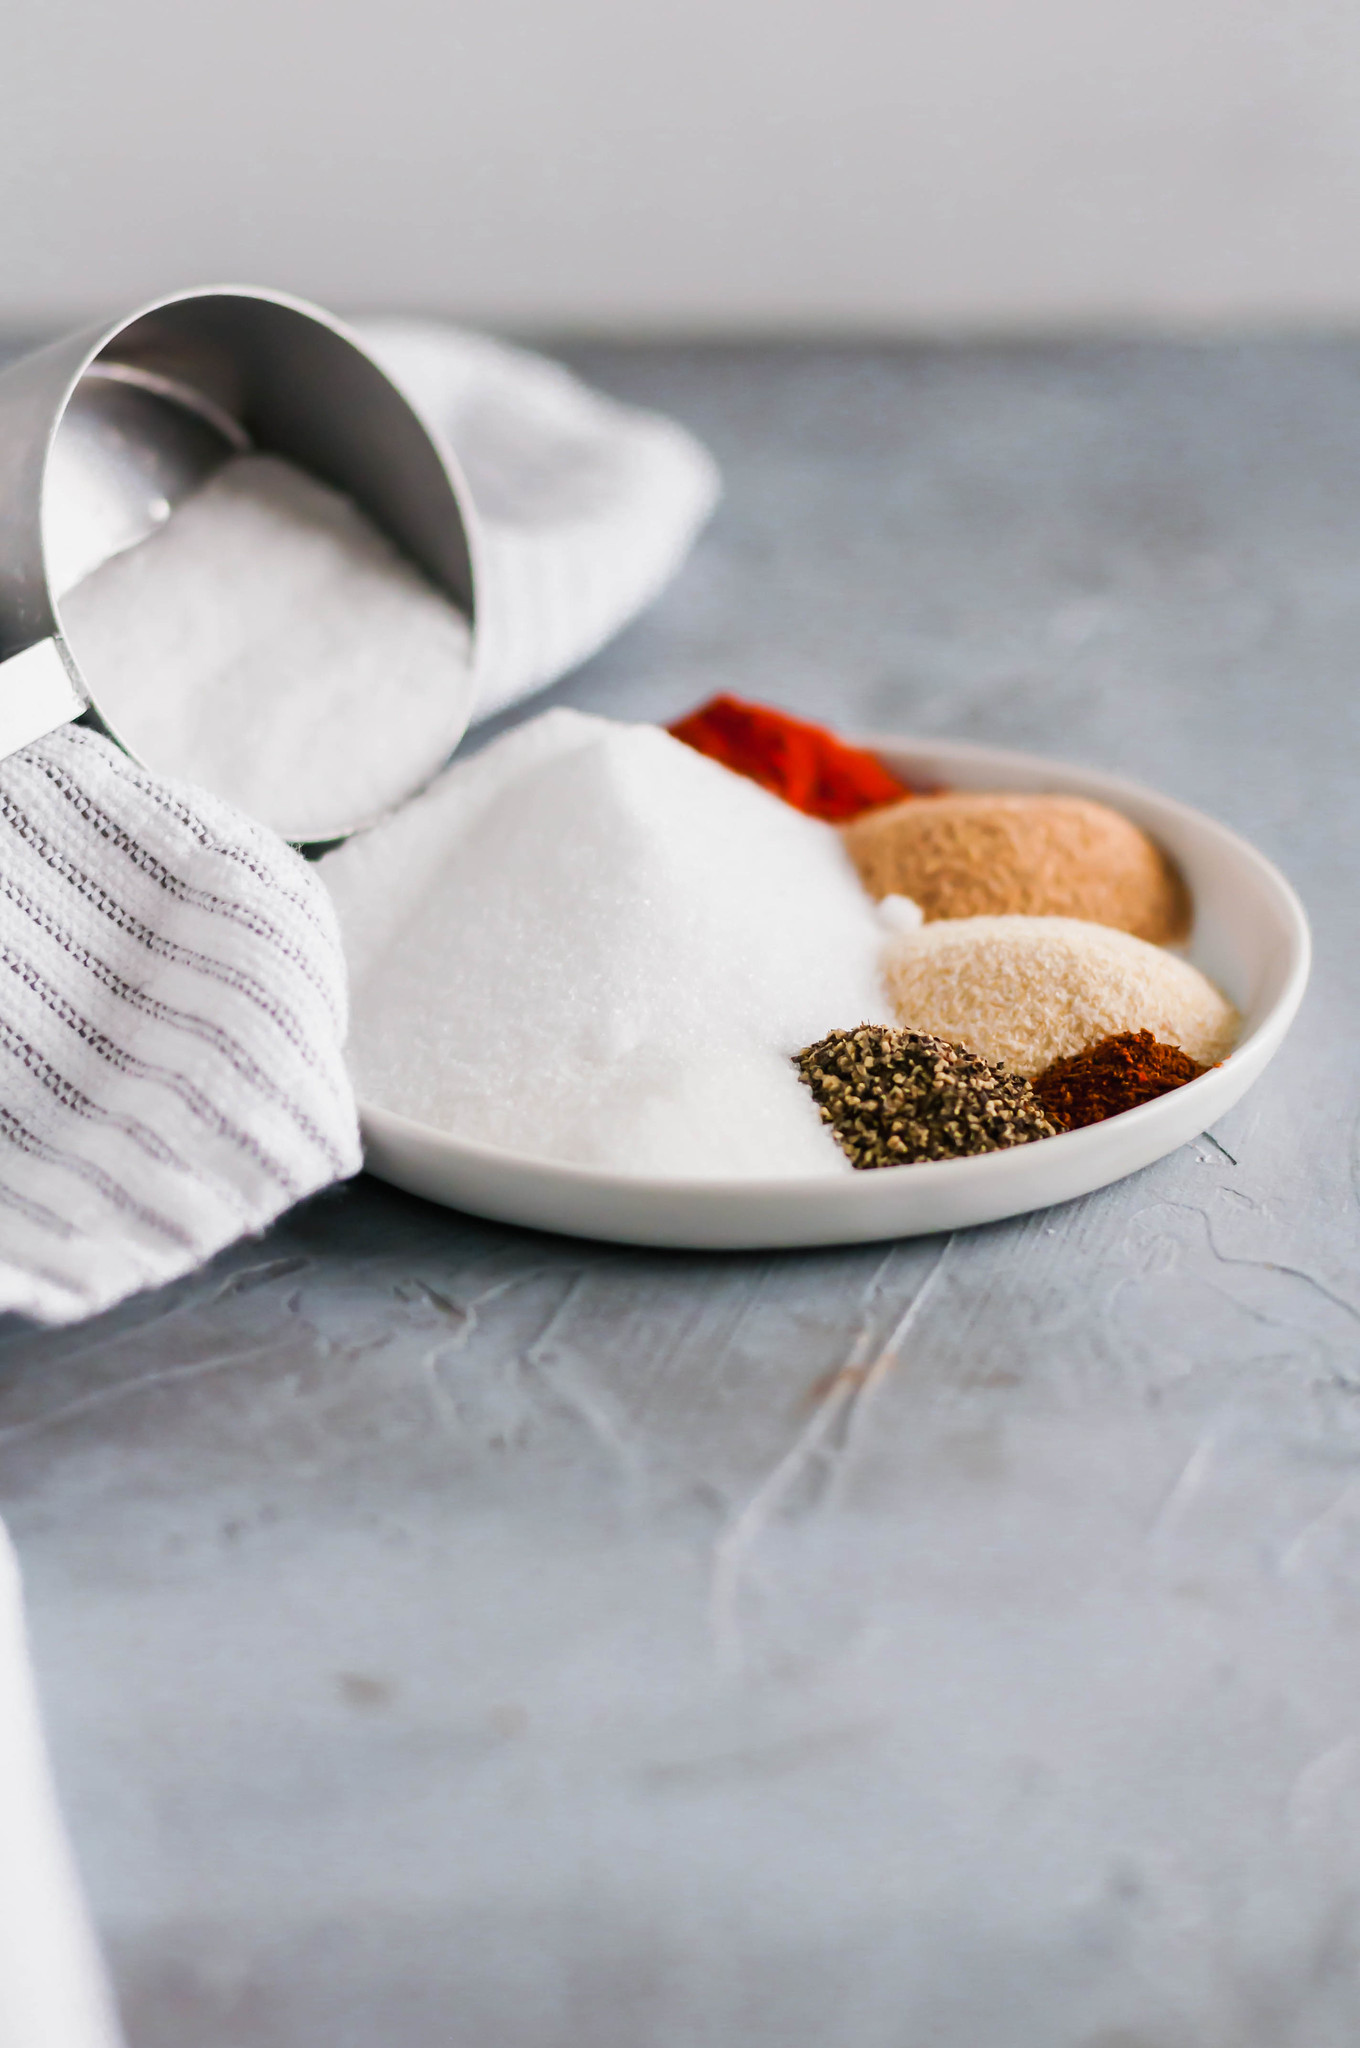 Skip the store-bought stuff and make your own Homemade Seasoned Salt. Mix it up in minutes with ingredients already in your cabinet.